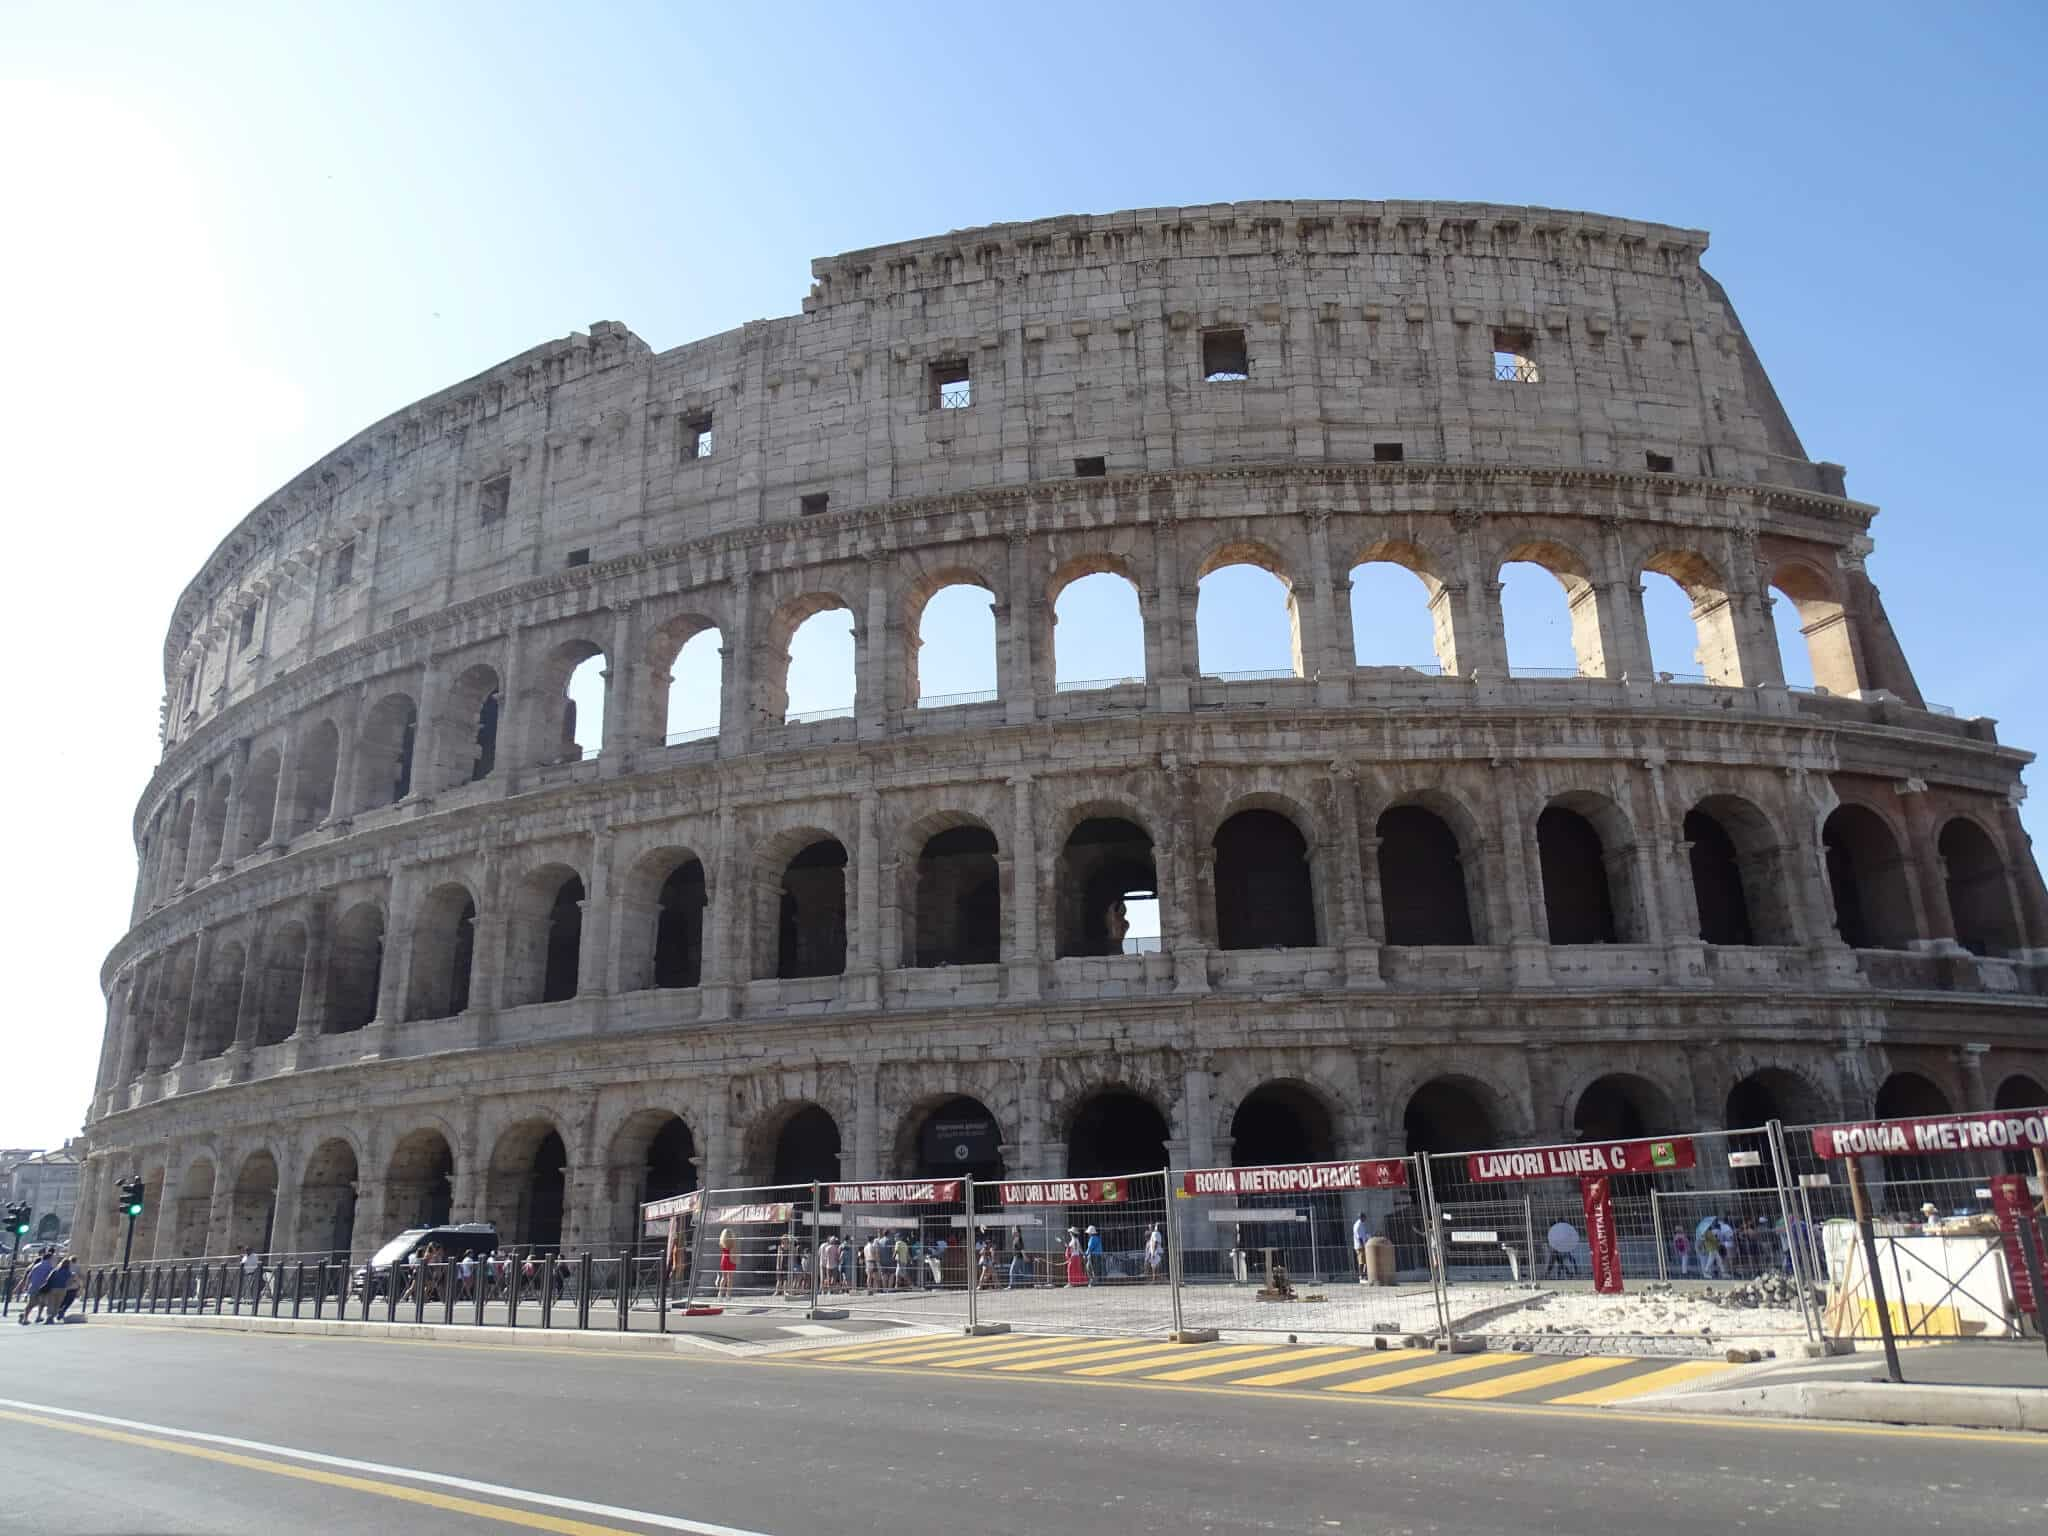 The Colosseum, a fun thing to do in Rome